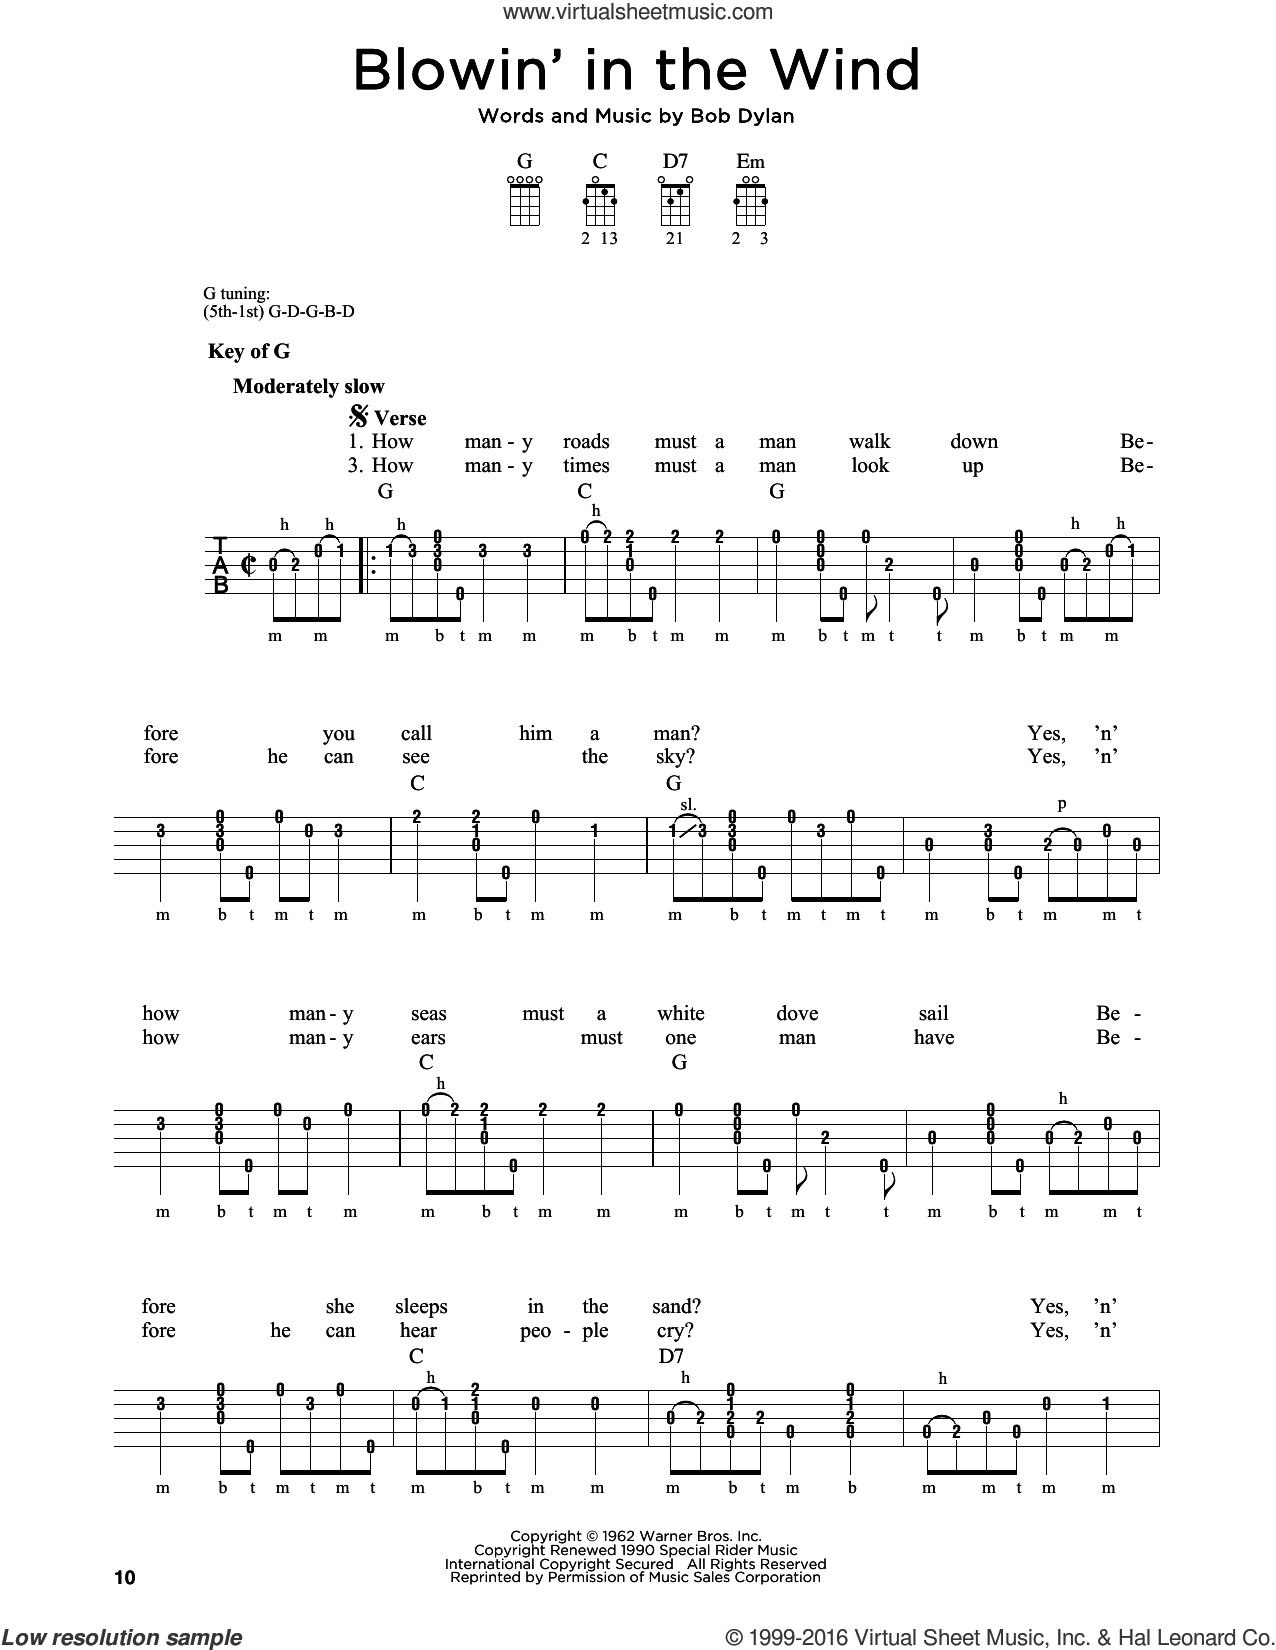 Blowin' In The Wind sheet music for banjo solo by Bob Dylan, Peter, Paul & Mary and Stevie Wonder, intermediate skill level